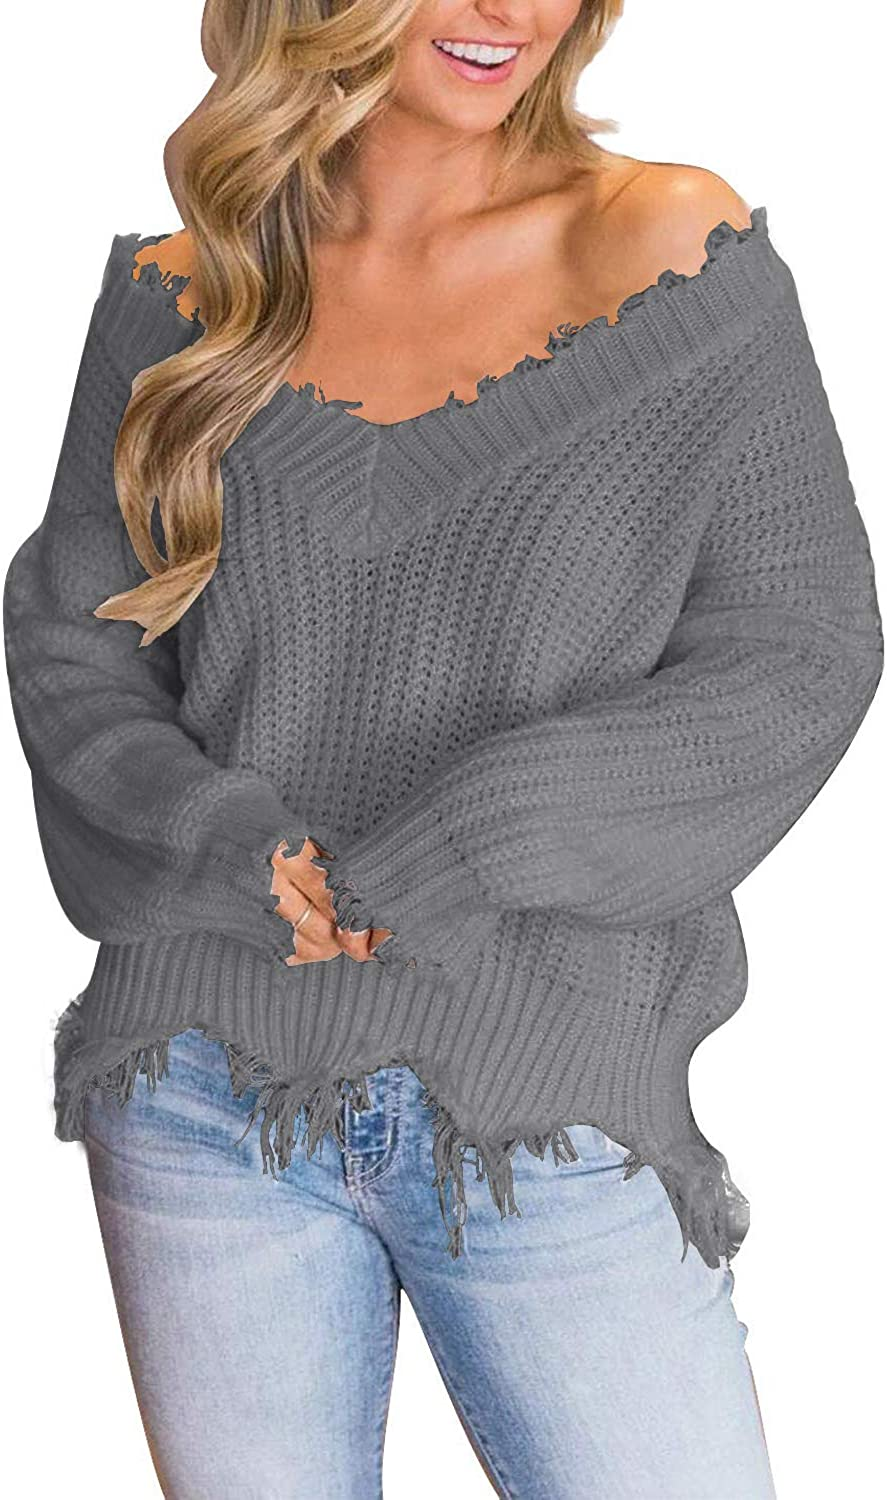 Wofupowga Girl Knitted Fashion Boys Plush Jumper Cute Pullover Sweaters